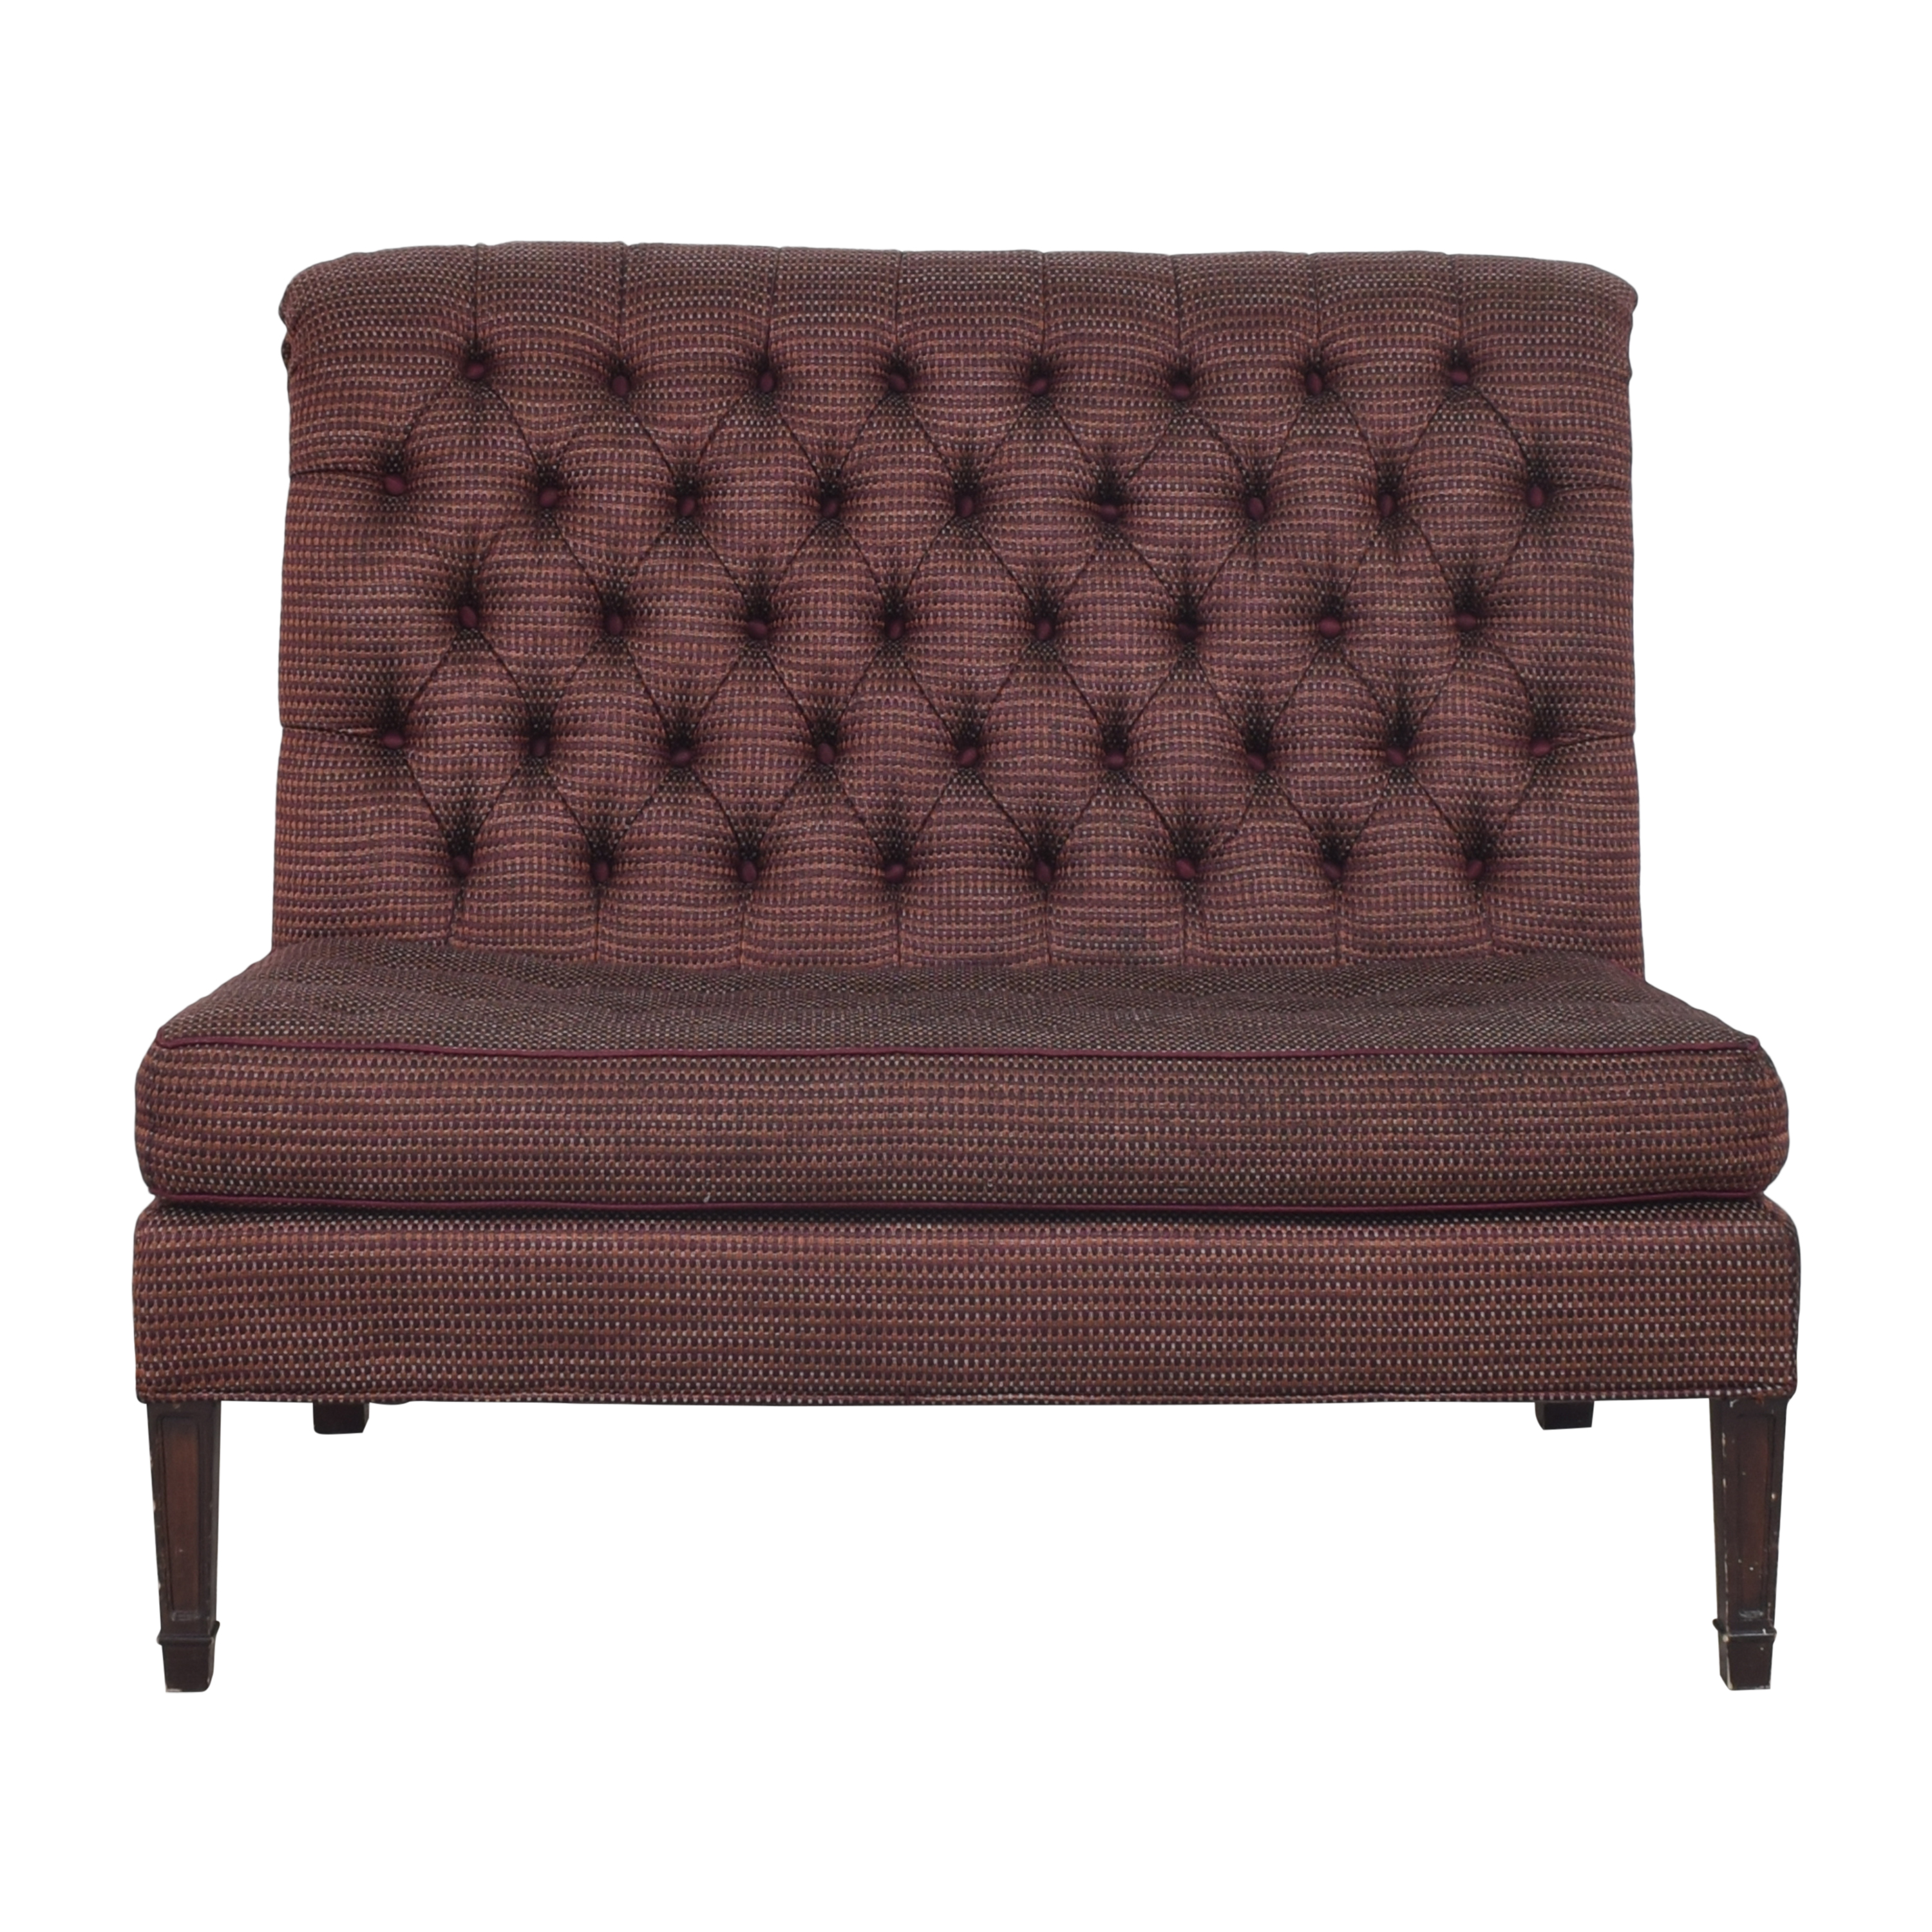 Lillian August Lillian August Tufted Settee coupon